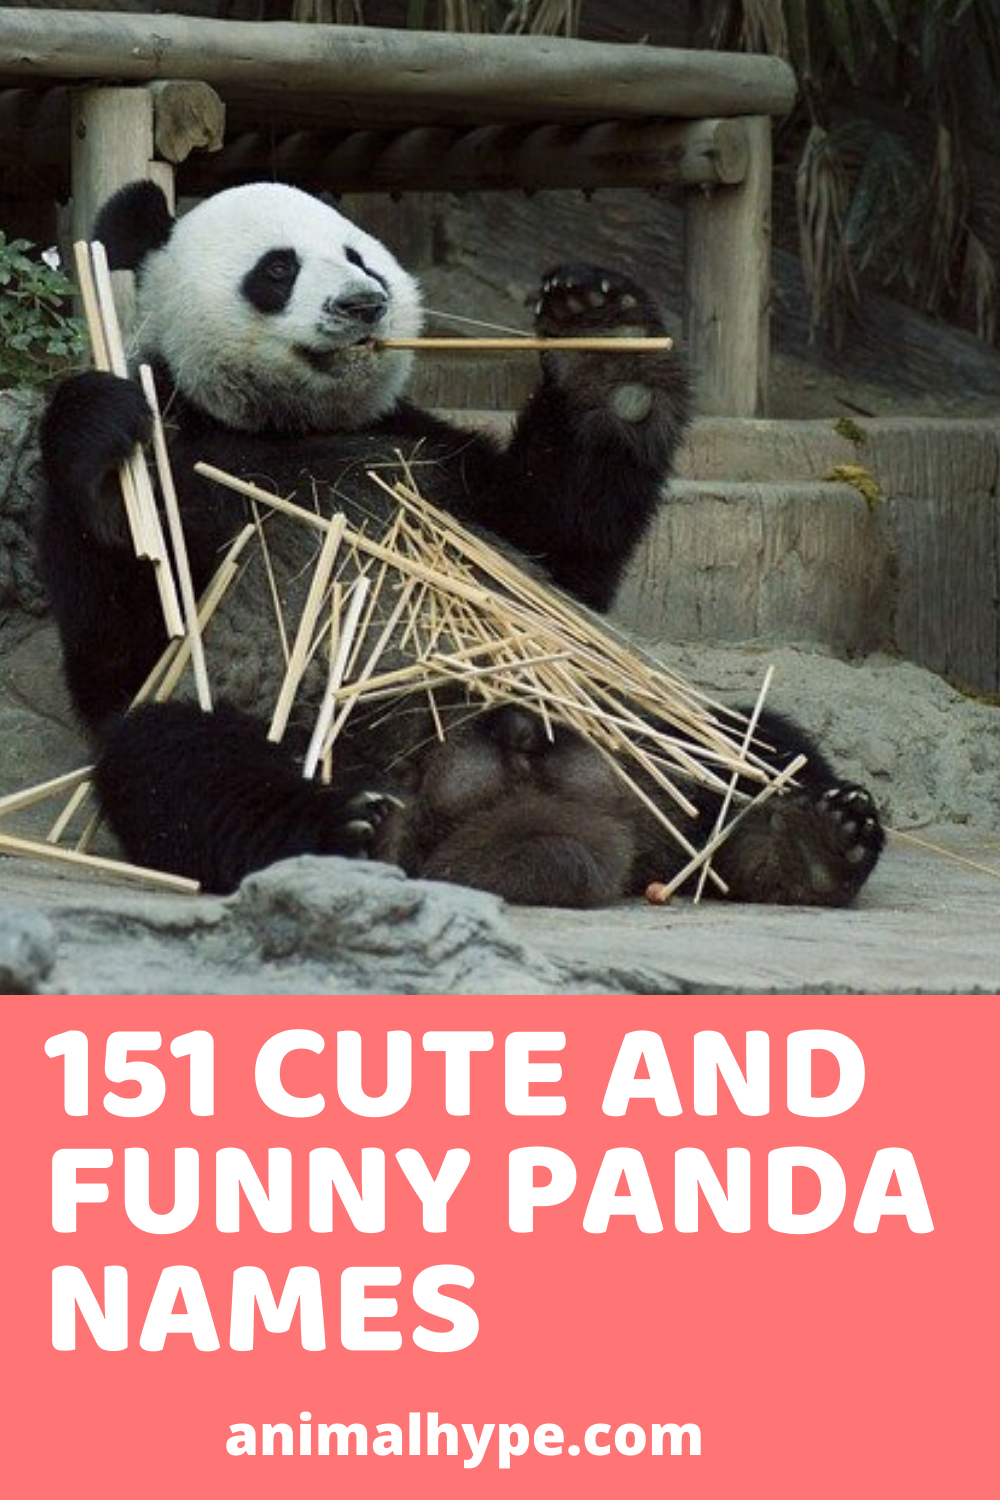 151 Cute and Funny Panda Names in 2020 (With images